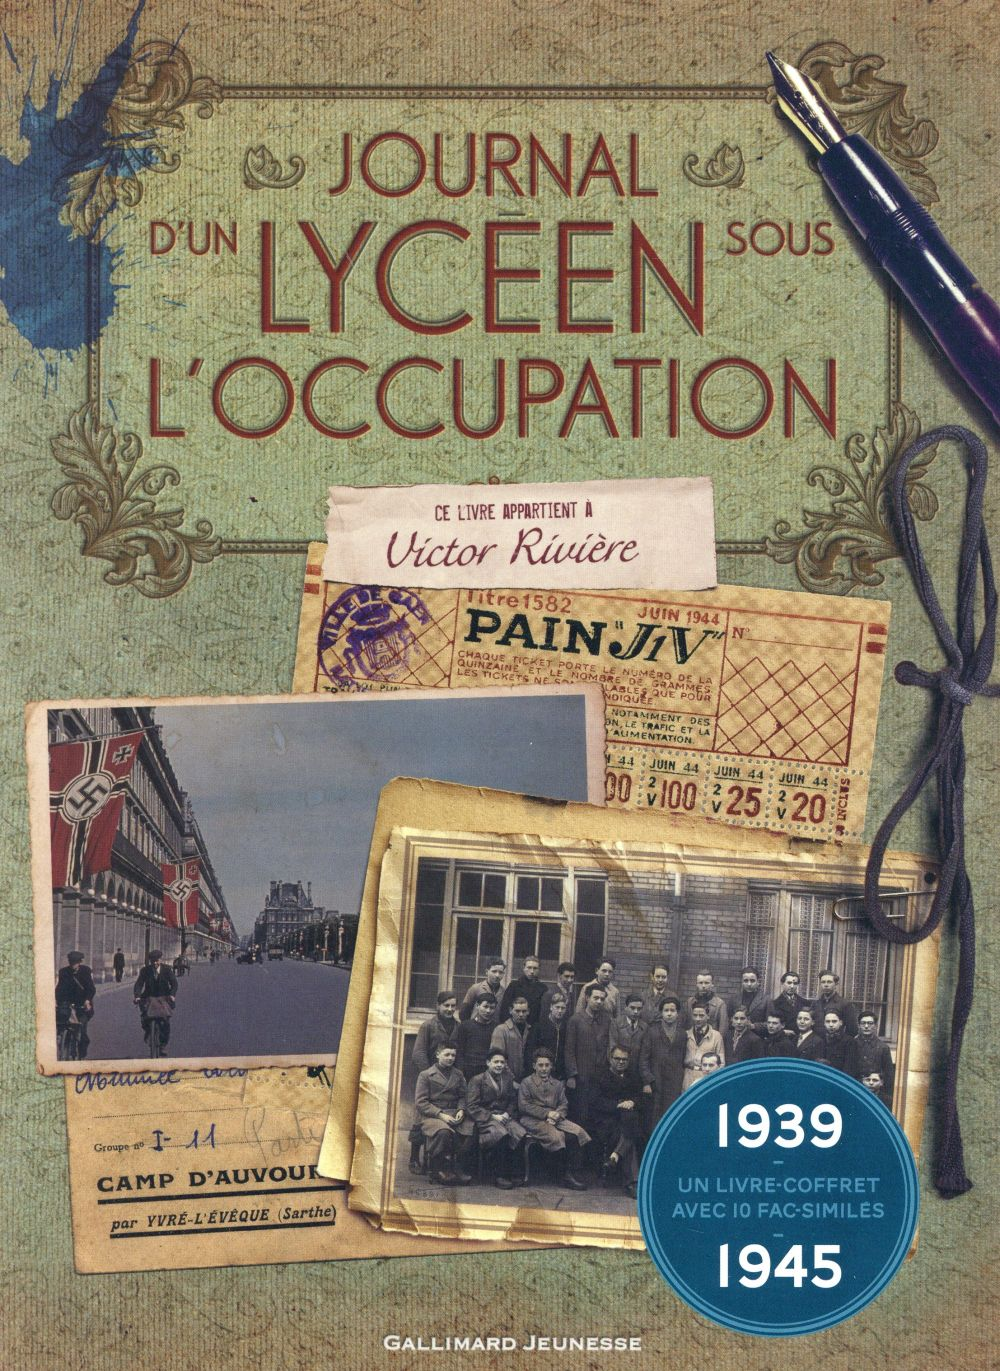 Le journal d'un lycéen sous l'occupation